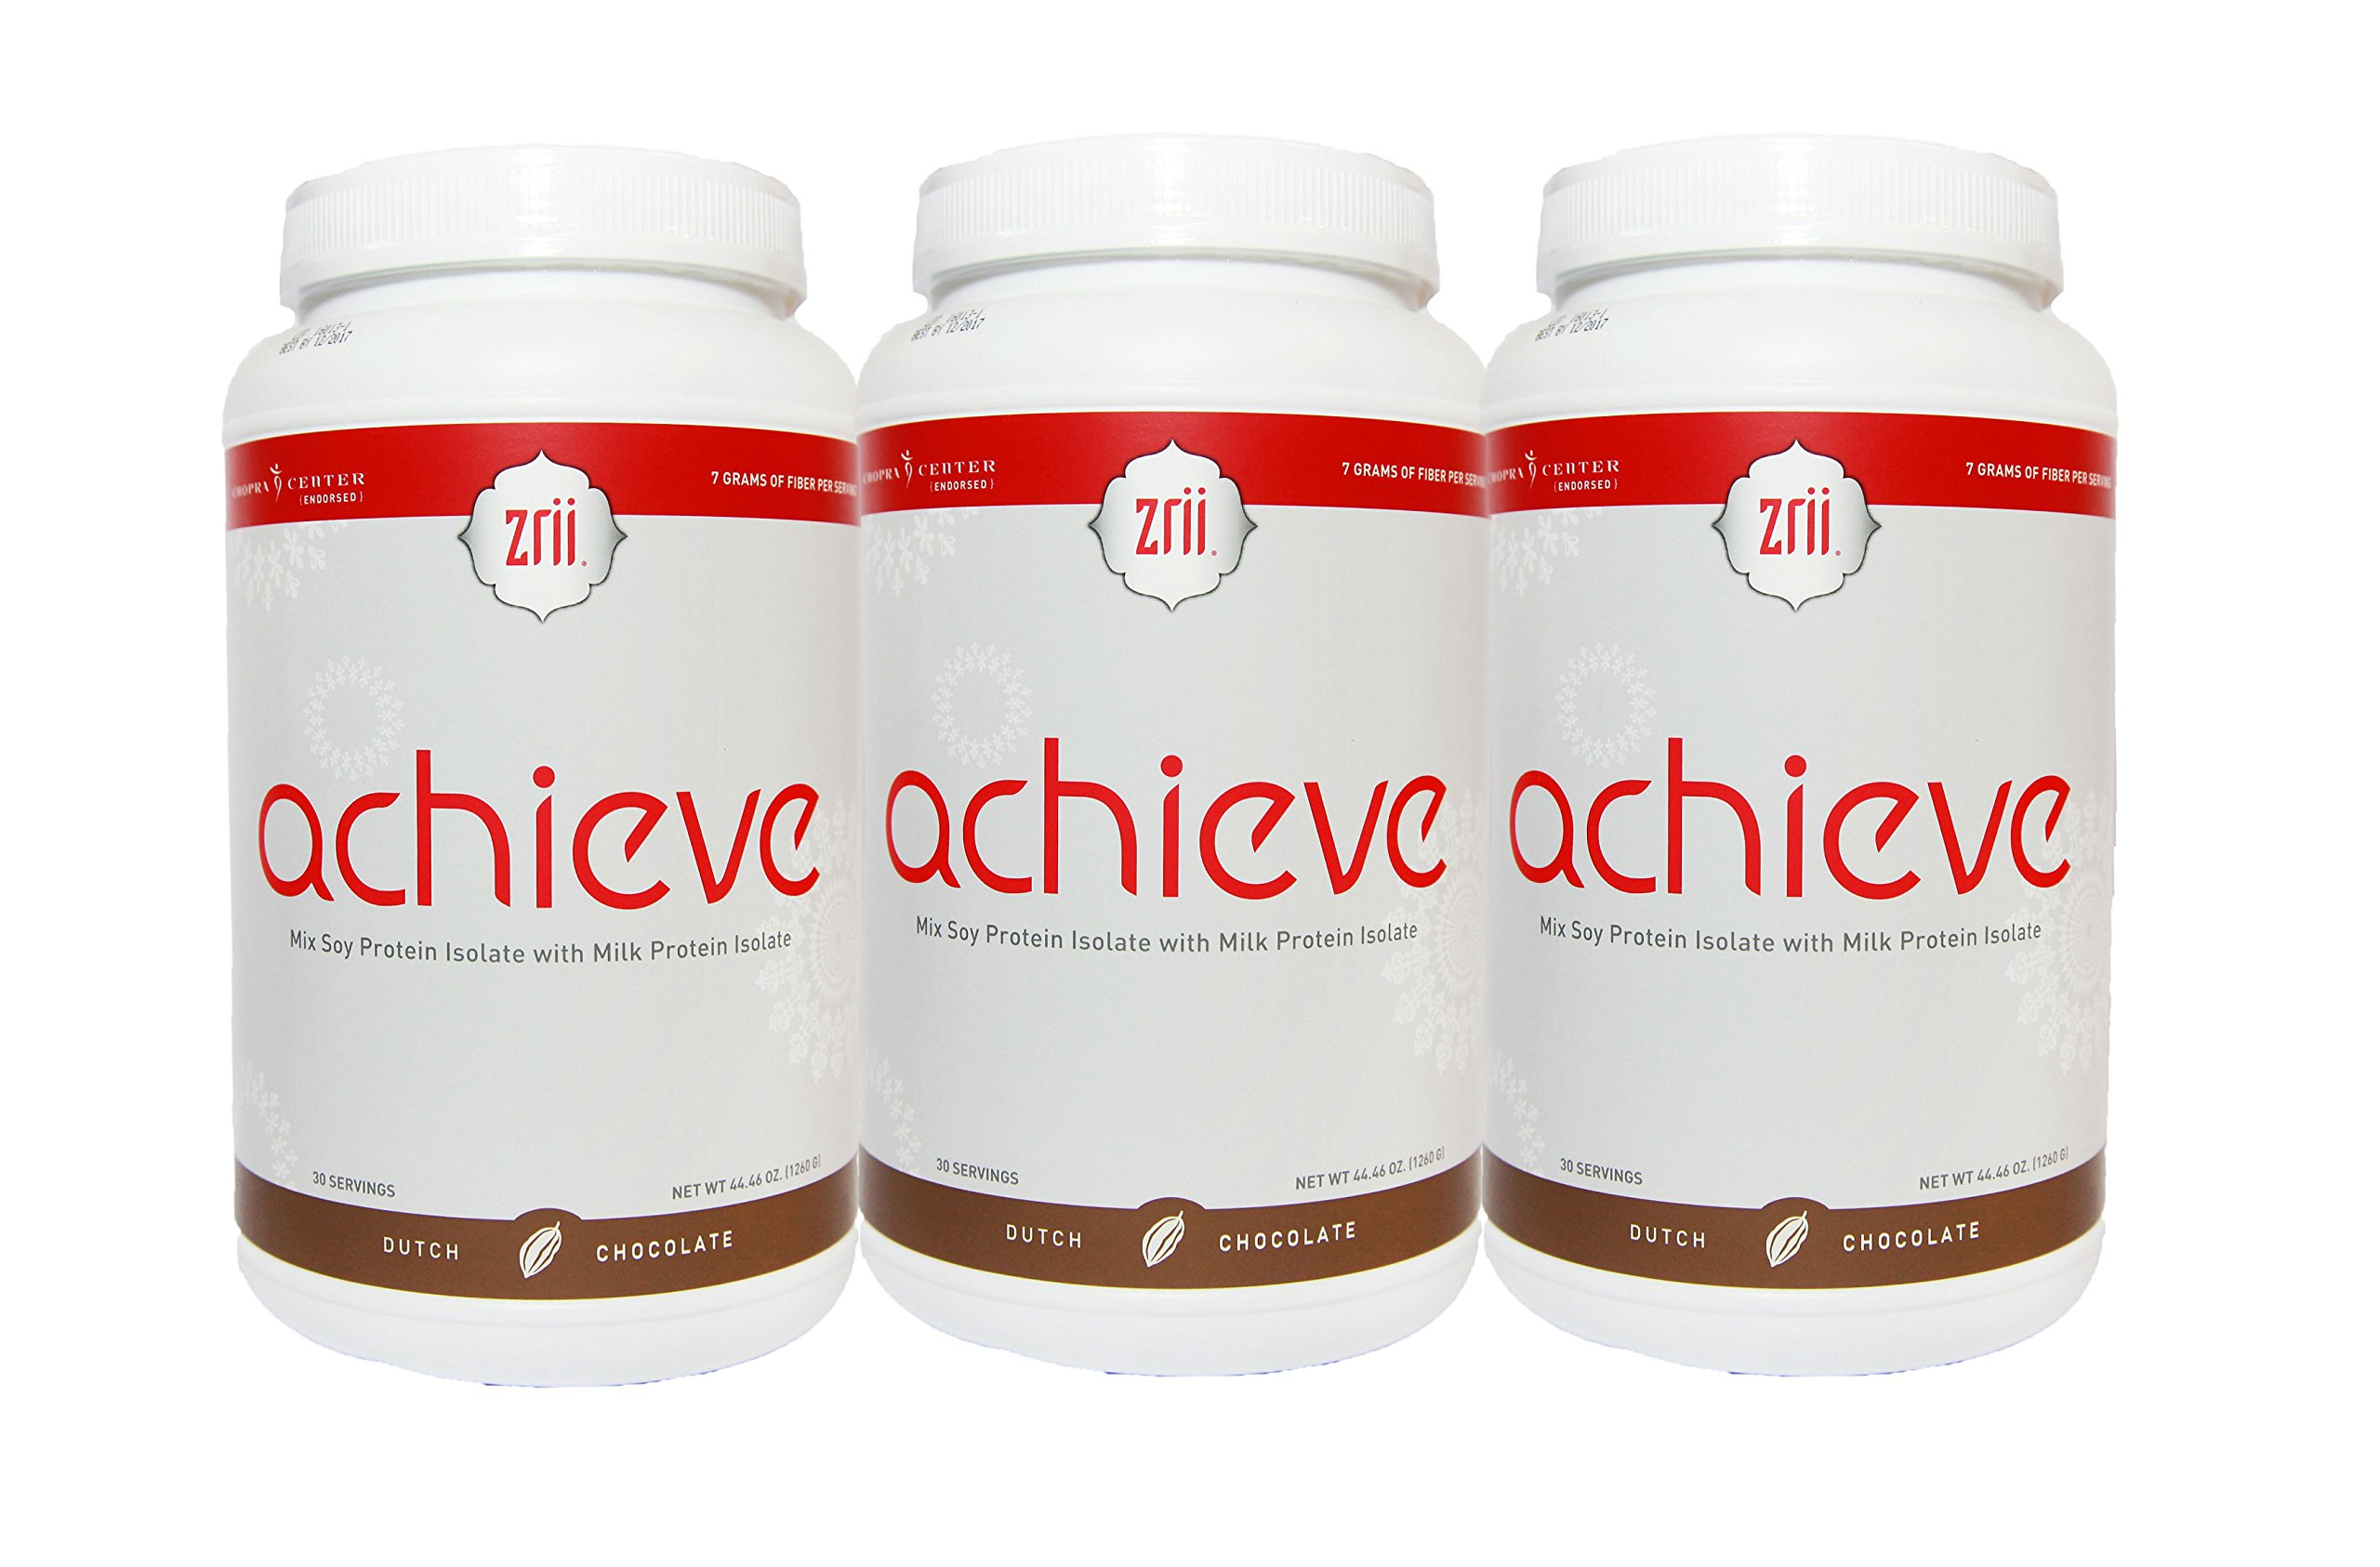 3x Zrii ACHIEVE (Dutch Chocolate) Mix Soy Protein Isolate with Milk Protein Isolate (44.46 ounce) + Free Express Shipping to USA (2 to 3 days) by Zrii (Image #1)